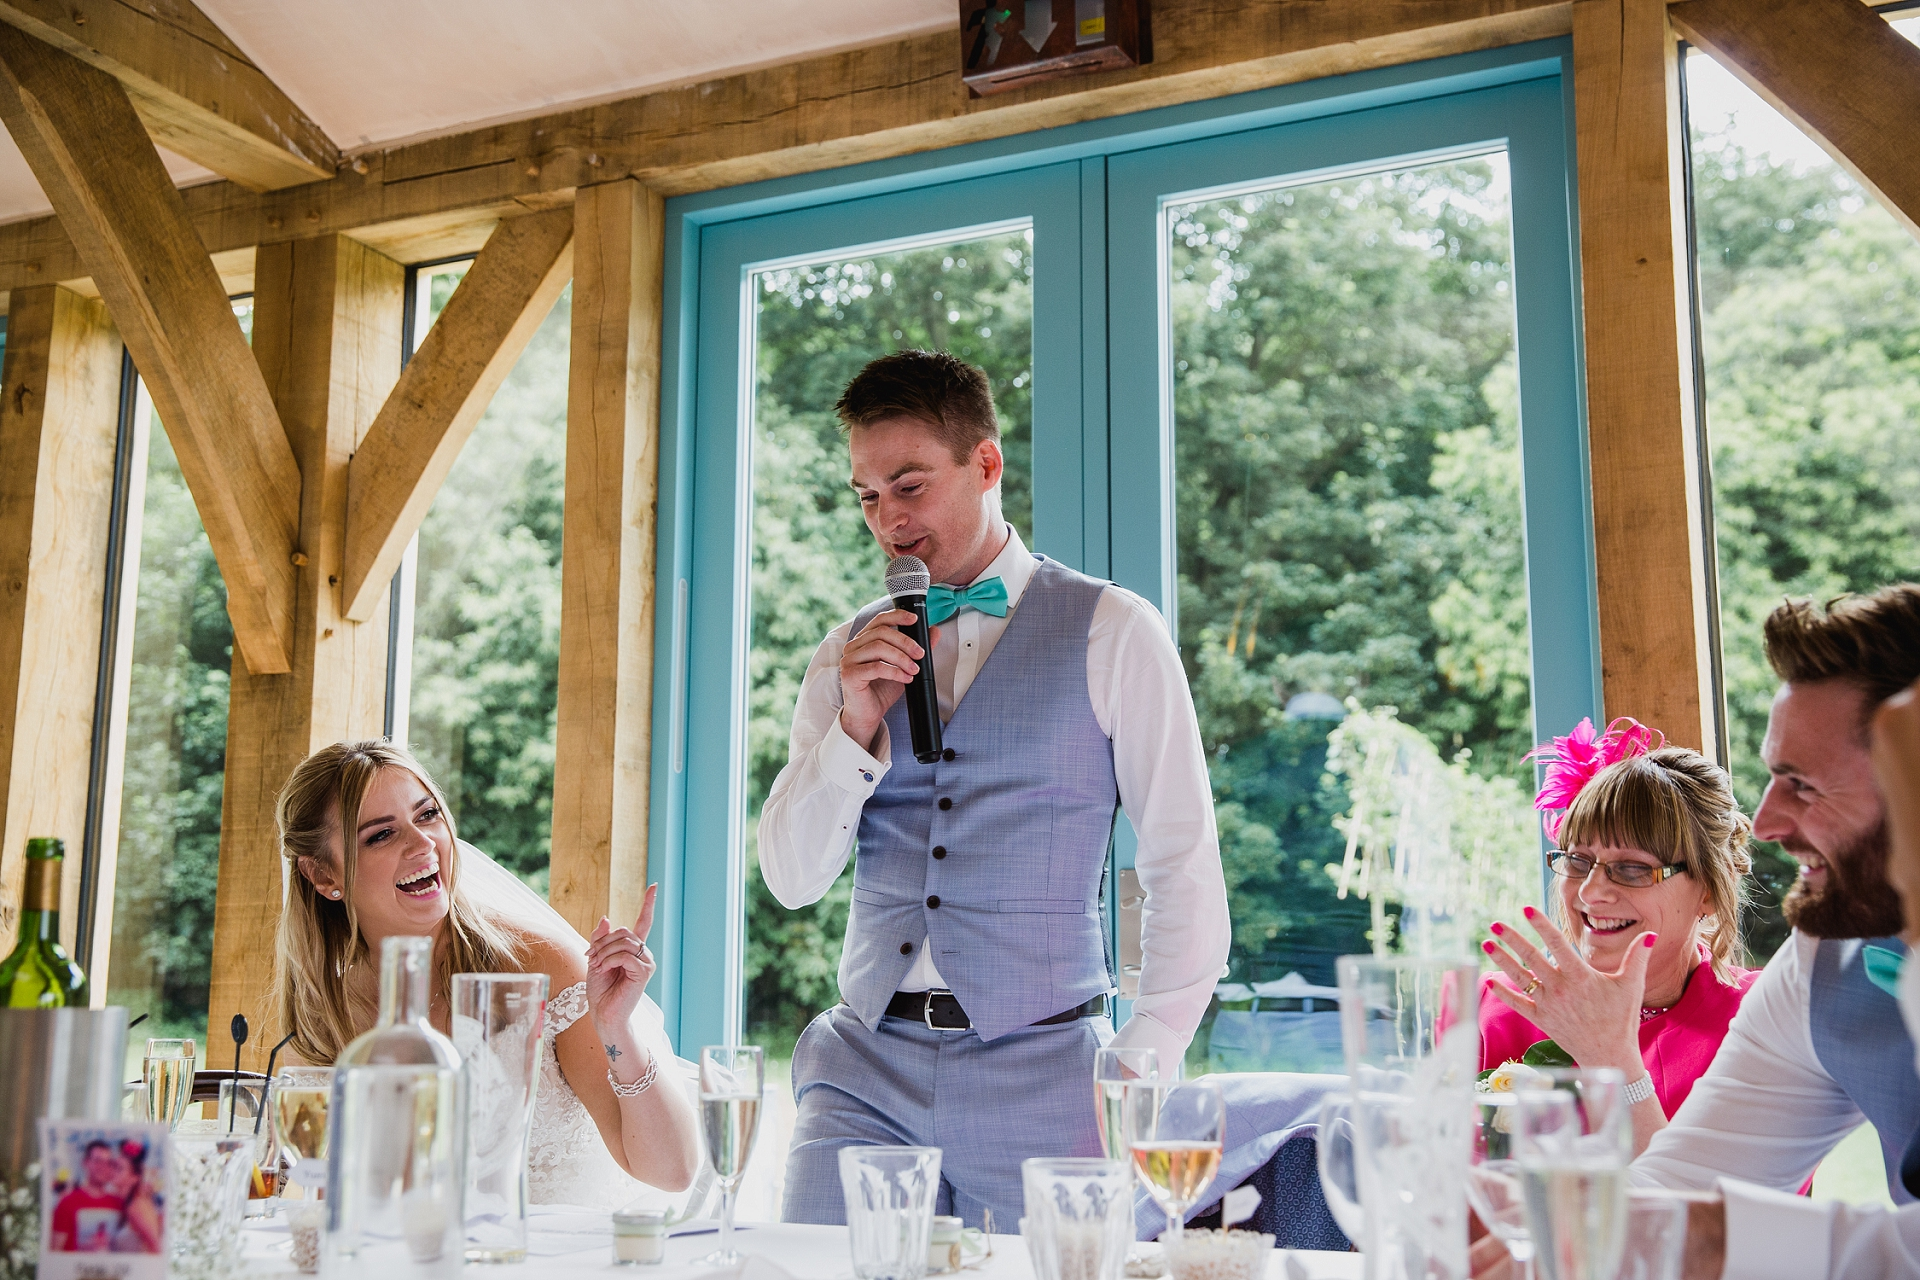 Wedding speaches at Hazel Gap Barn